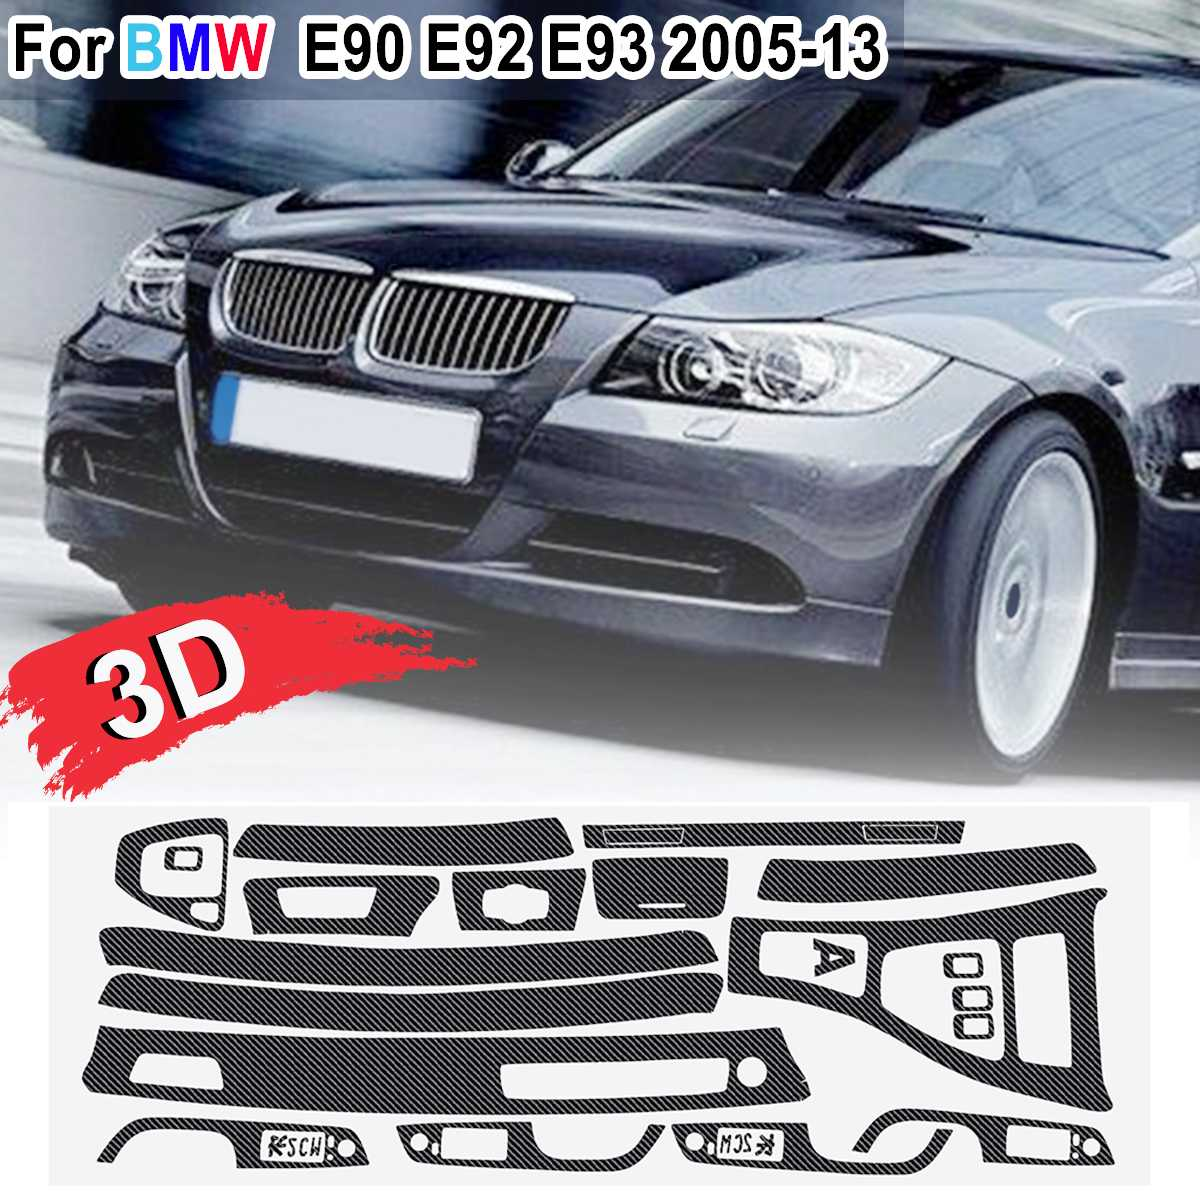 Image 4 - 15pcs Only RHD 5D Glossy/ 3D Matte Carbon Fiber Style Sticker Vinyl Decal Trim For BMW E90 E92 E93 2005 2013-in Car Stickers from Automobiles & Motorcycles